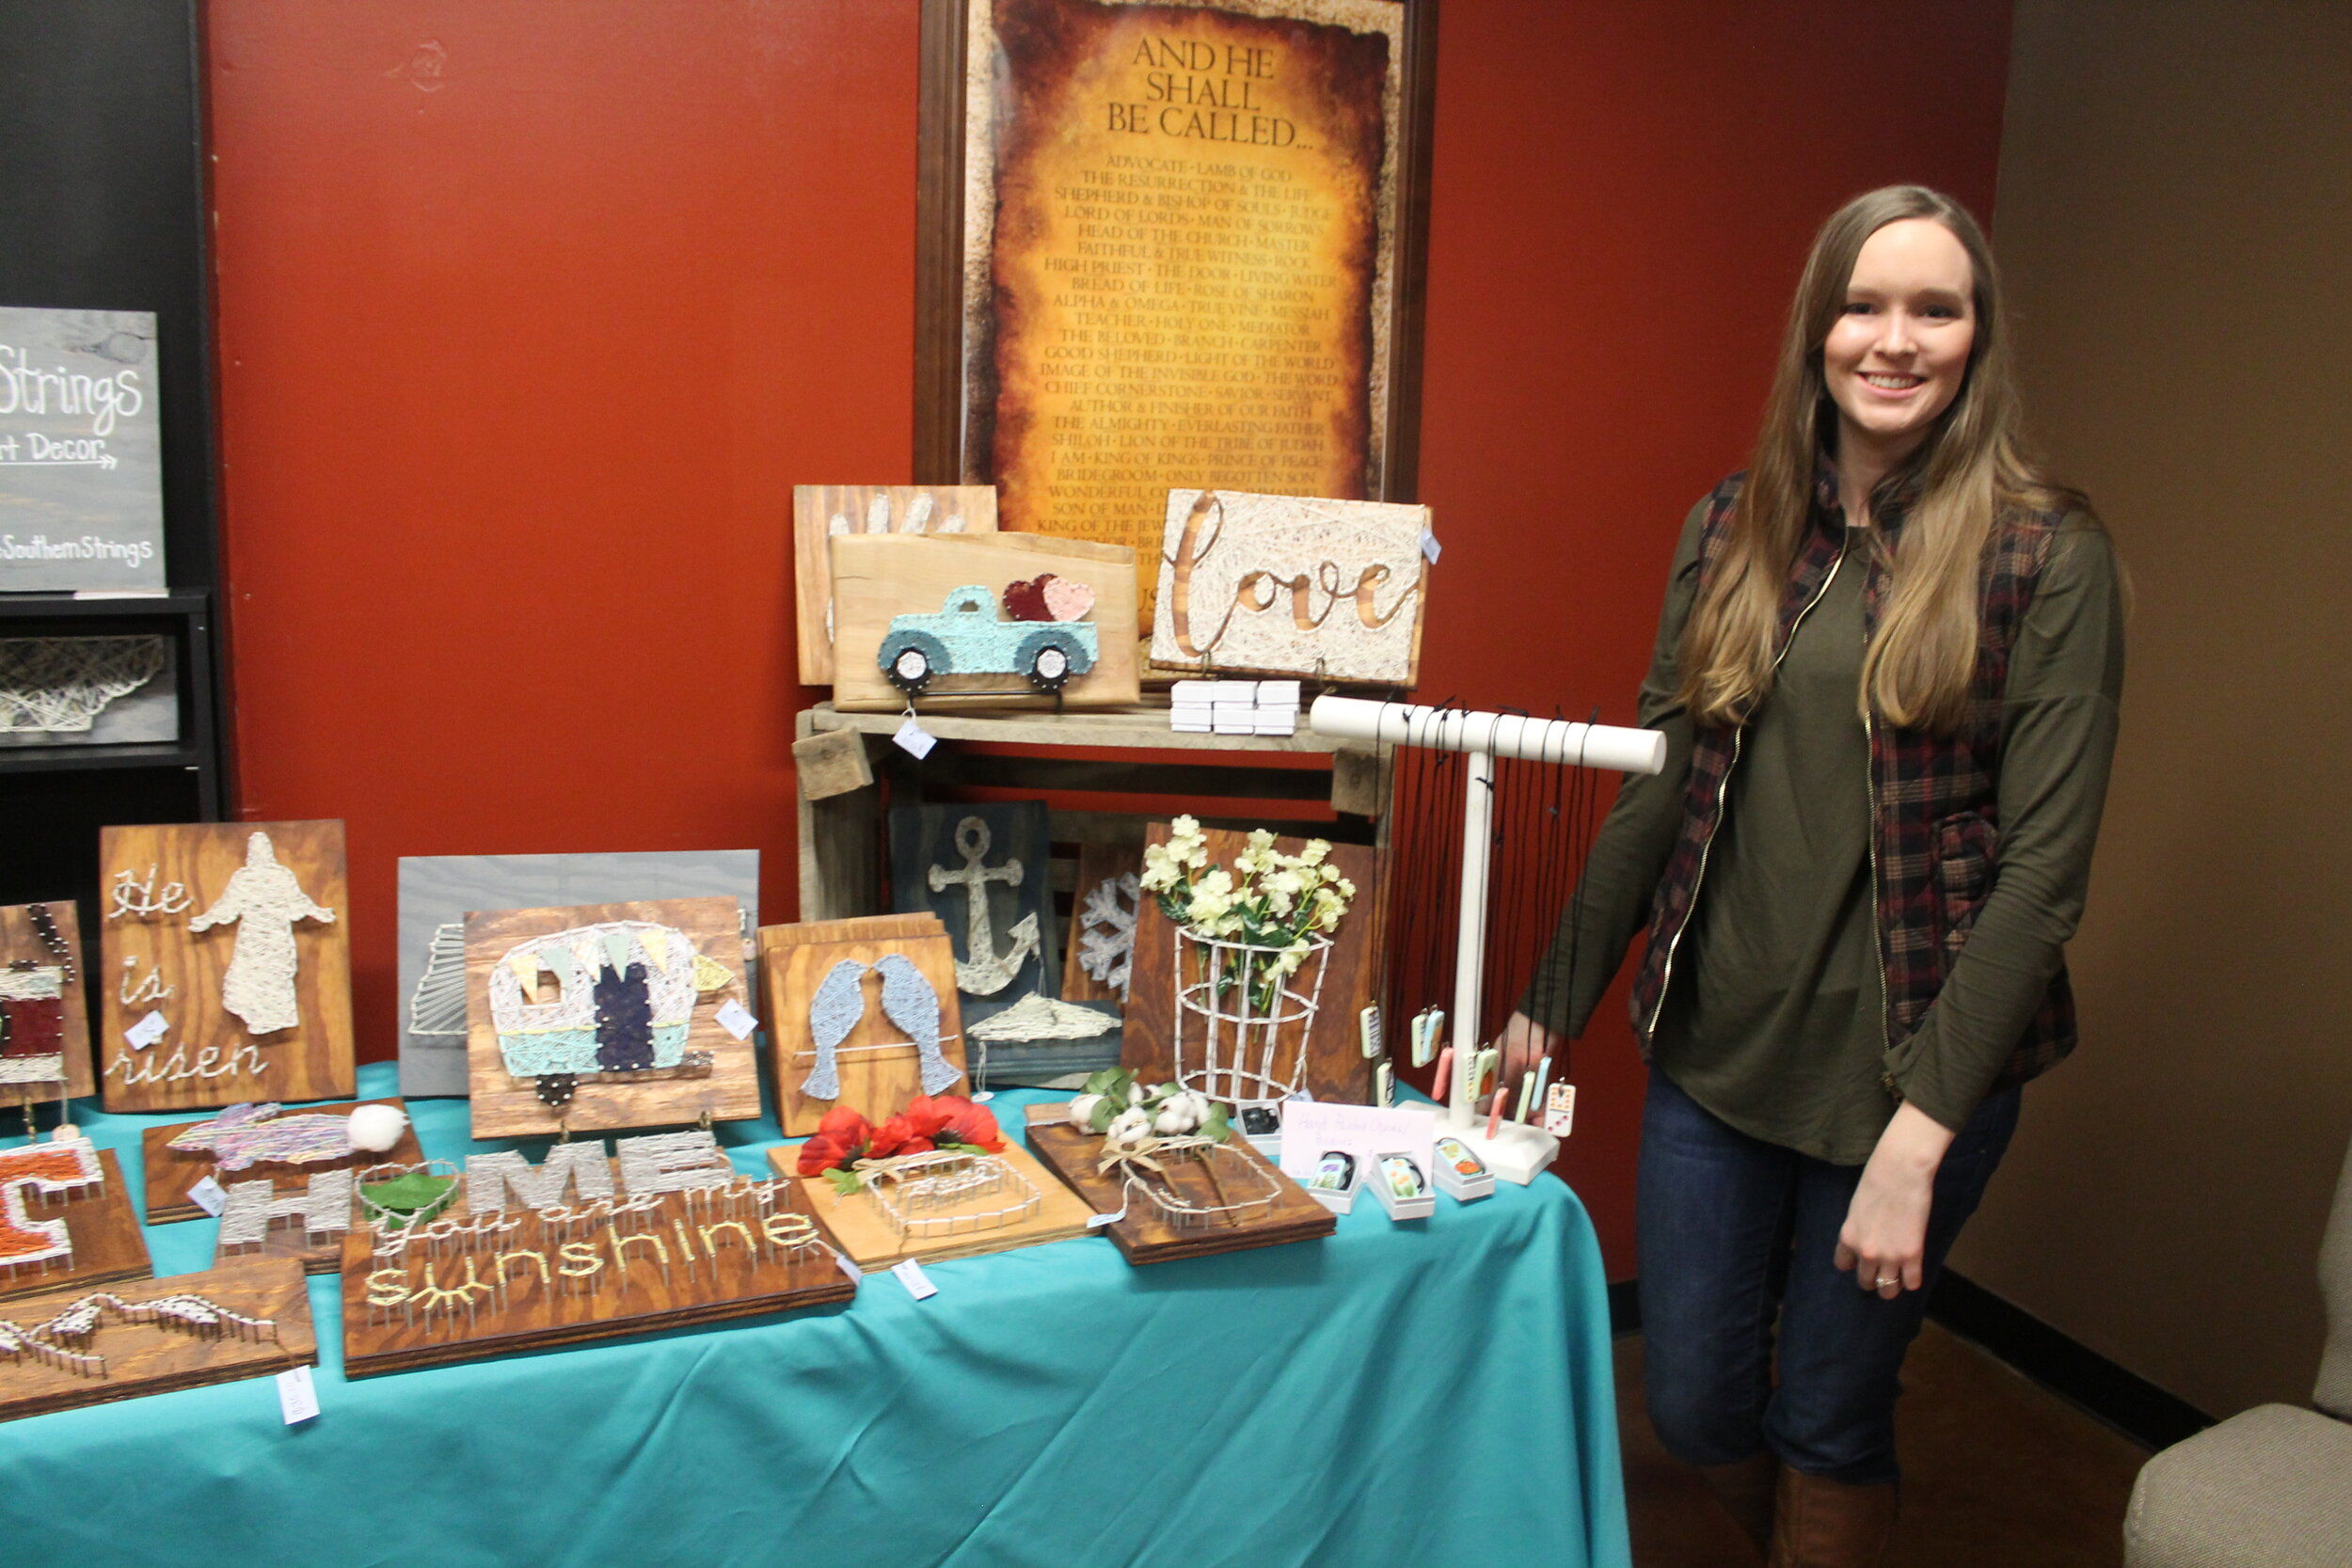 Southern Strings (Lauren Brown, owner), one of the small business venues in our marketplace